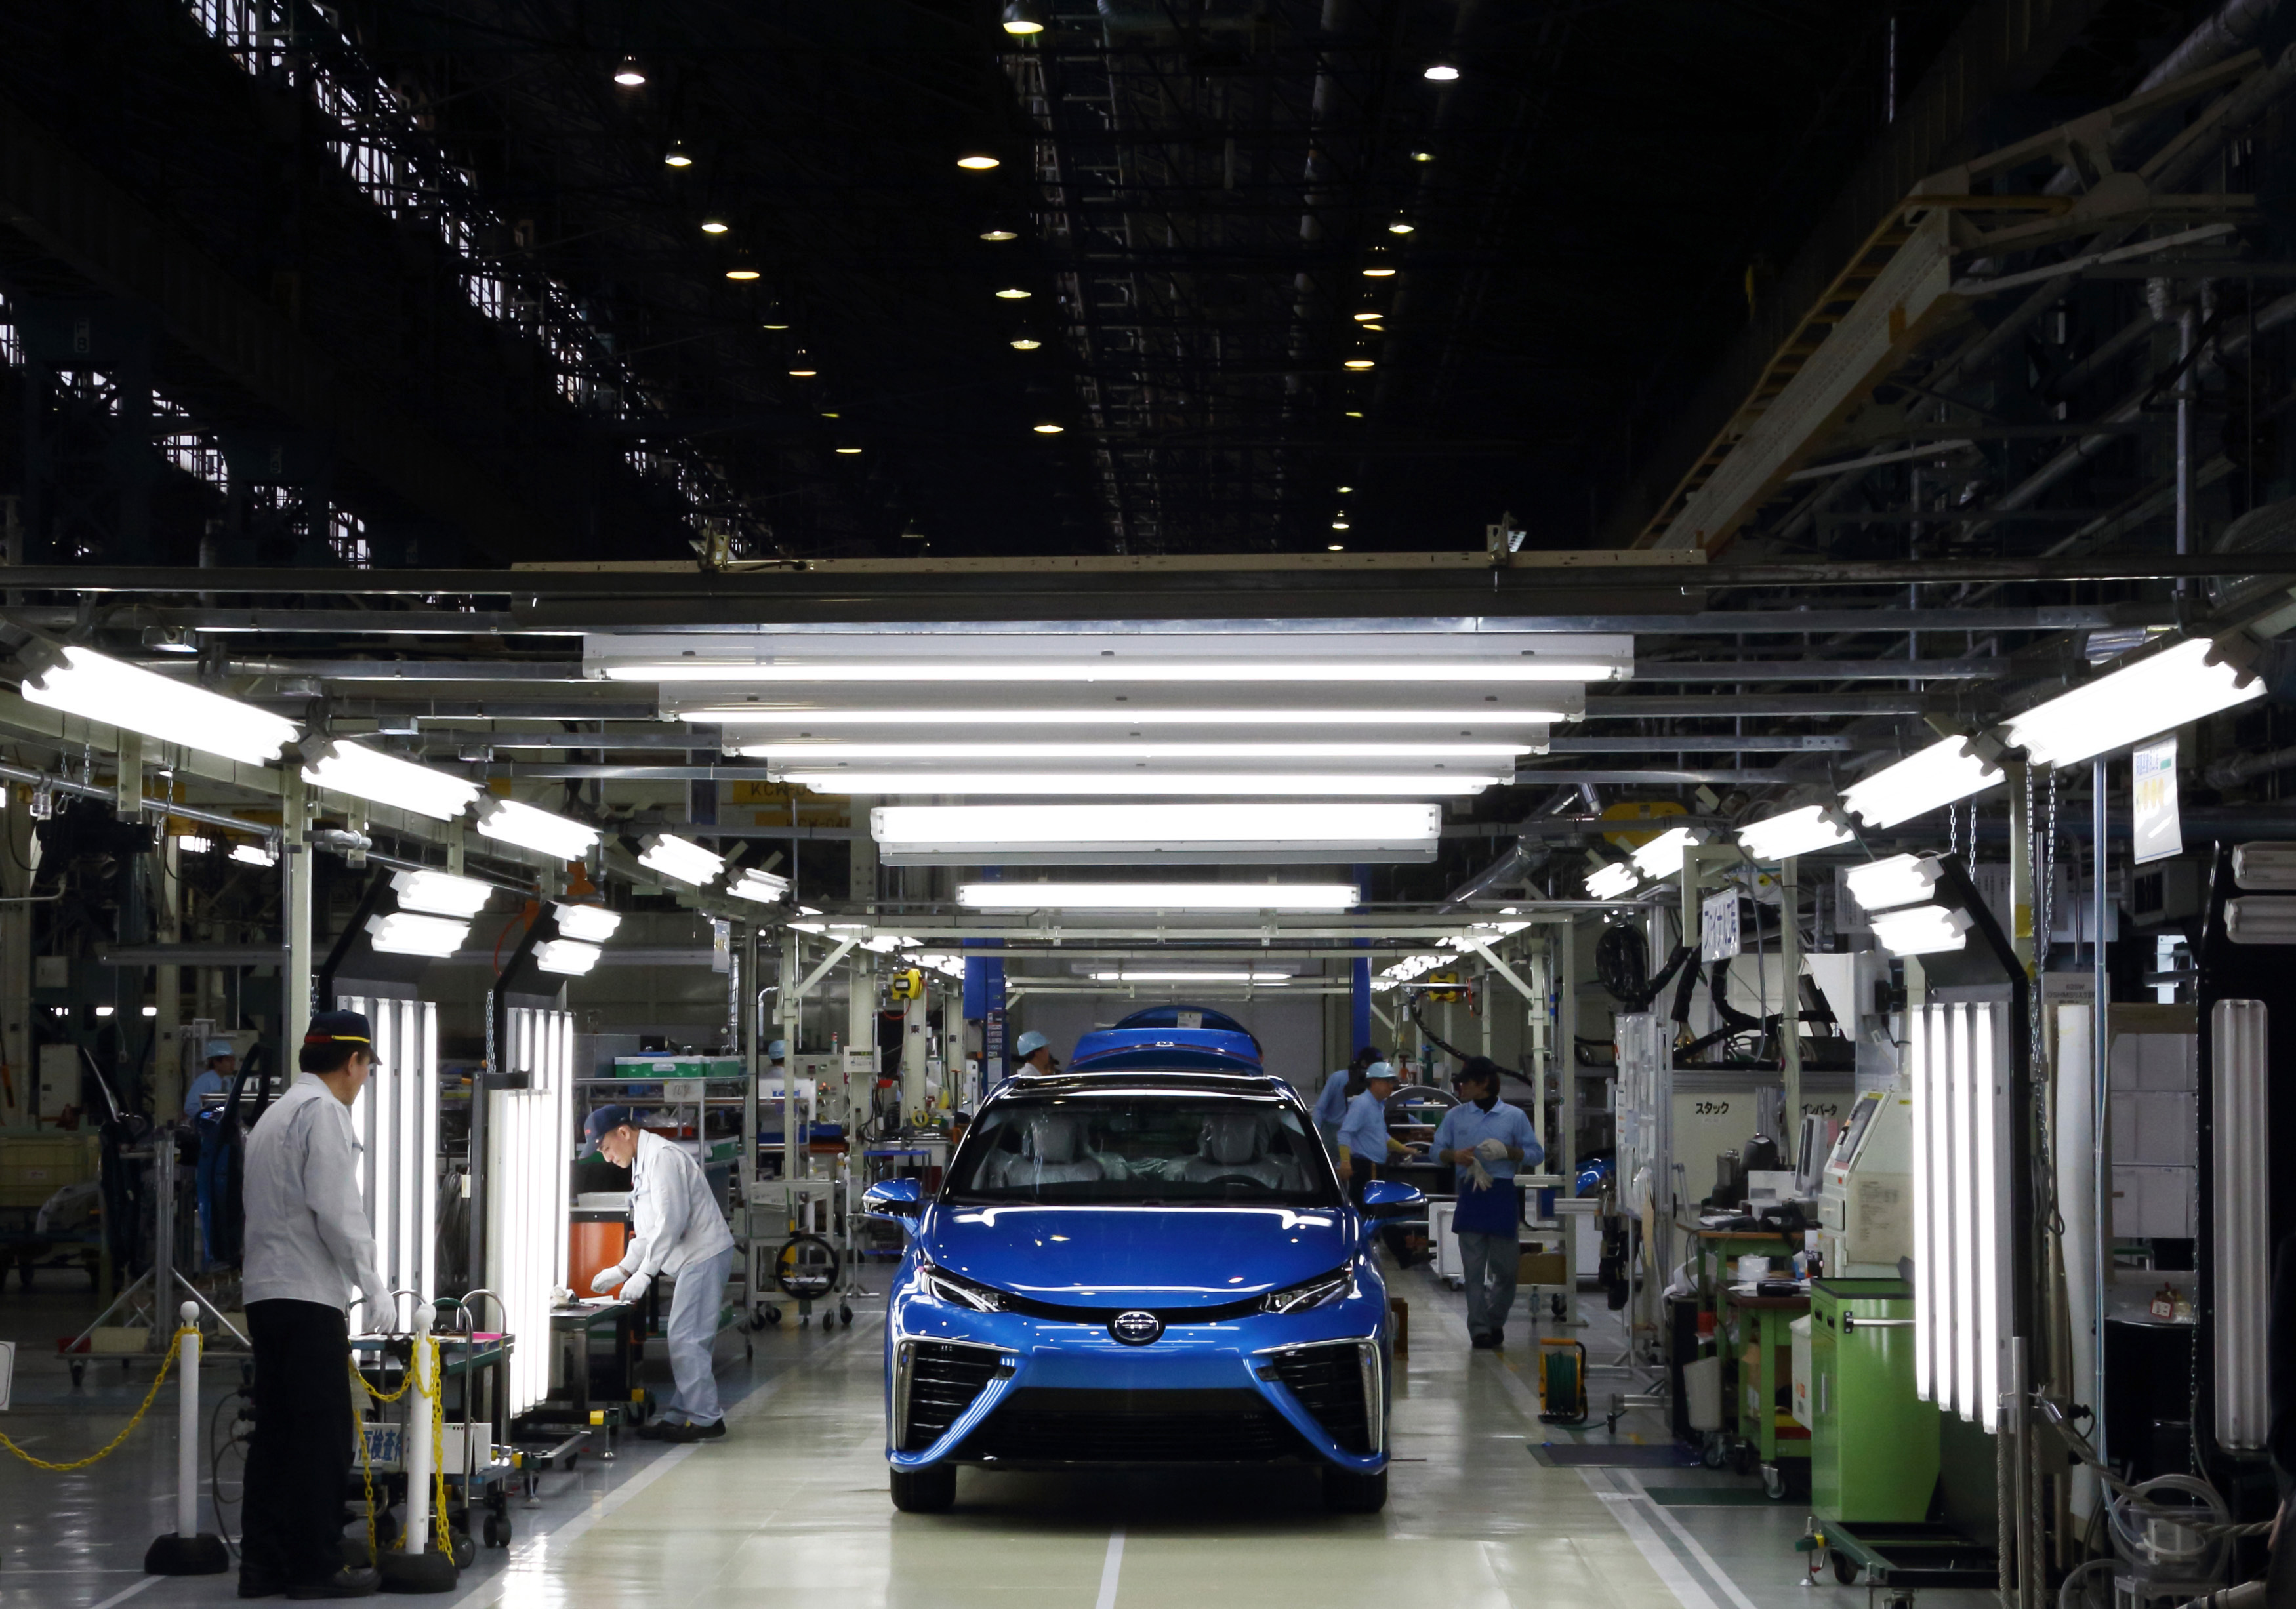 Toyota Motor Corp. President Akio Toyoda Attends Line Off Event For The Mirai Fuel Cell Vehicle